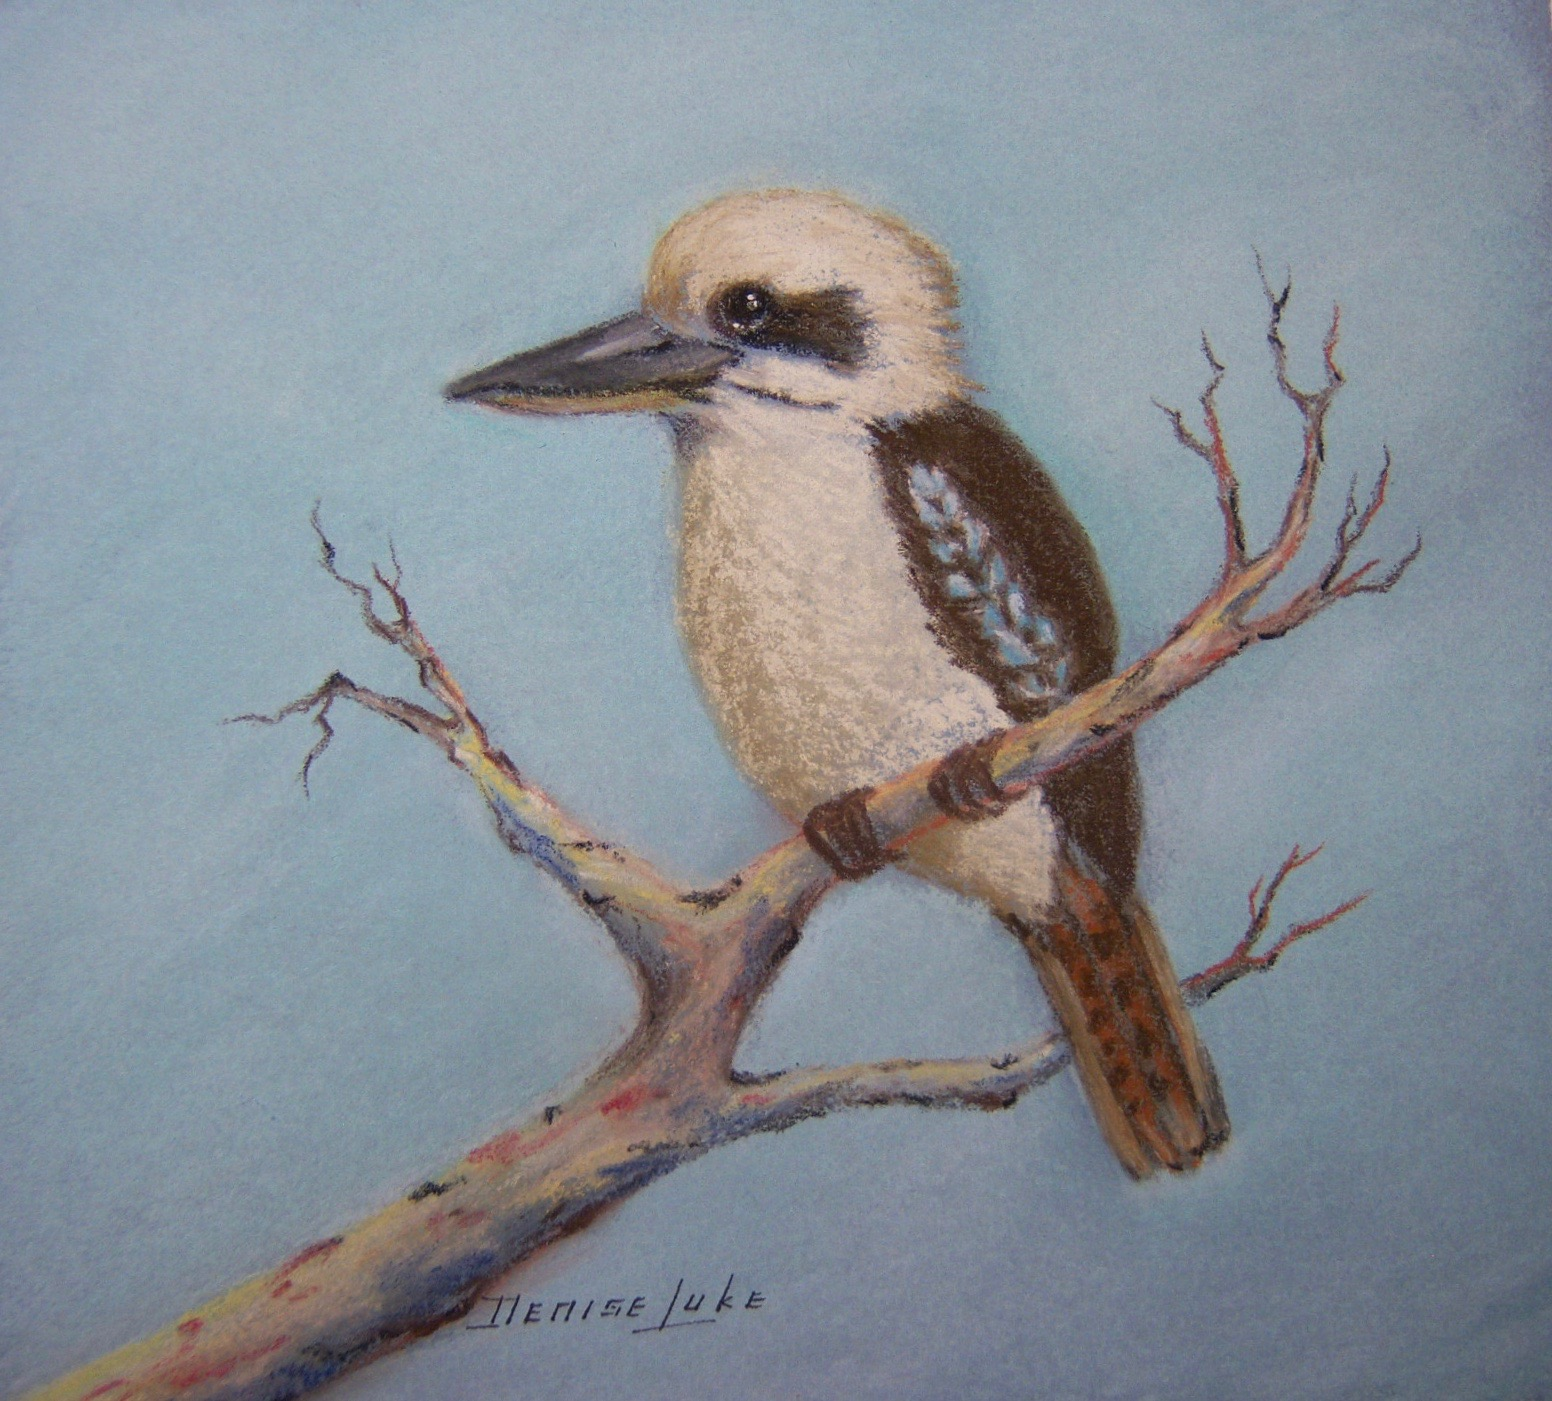 LAUGHING KOOKABURRA - 25cm x 25cm - framed